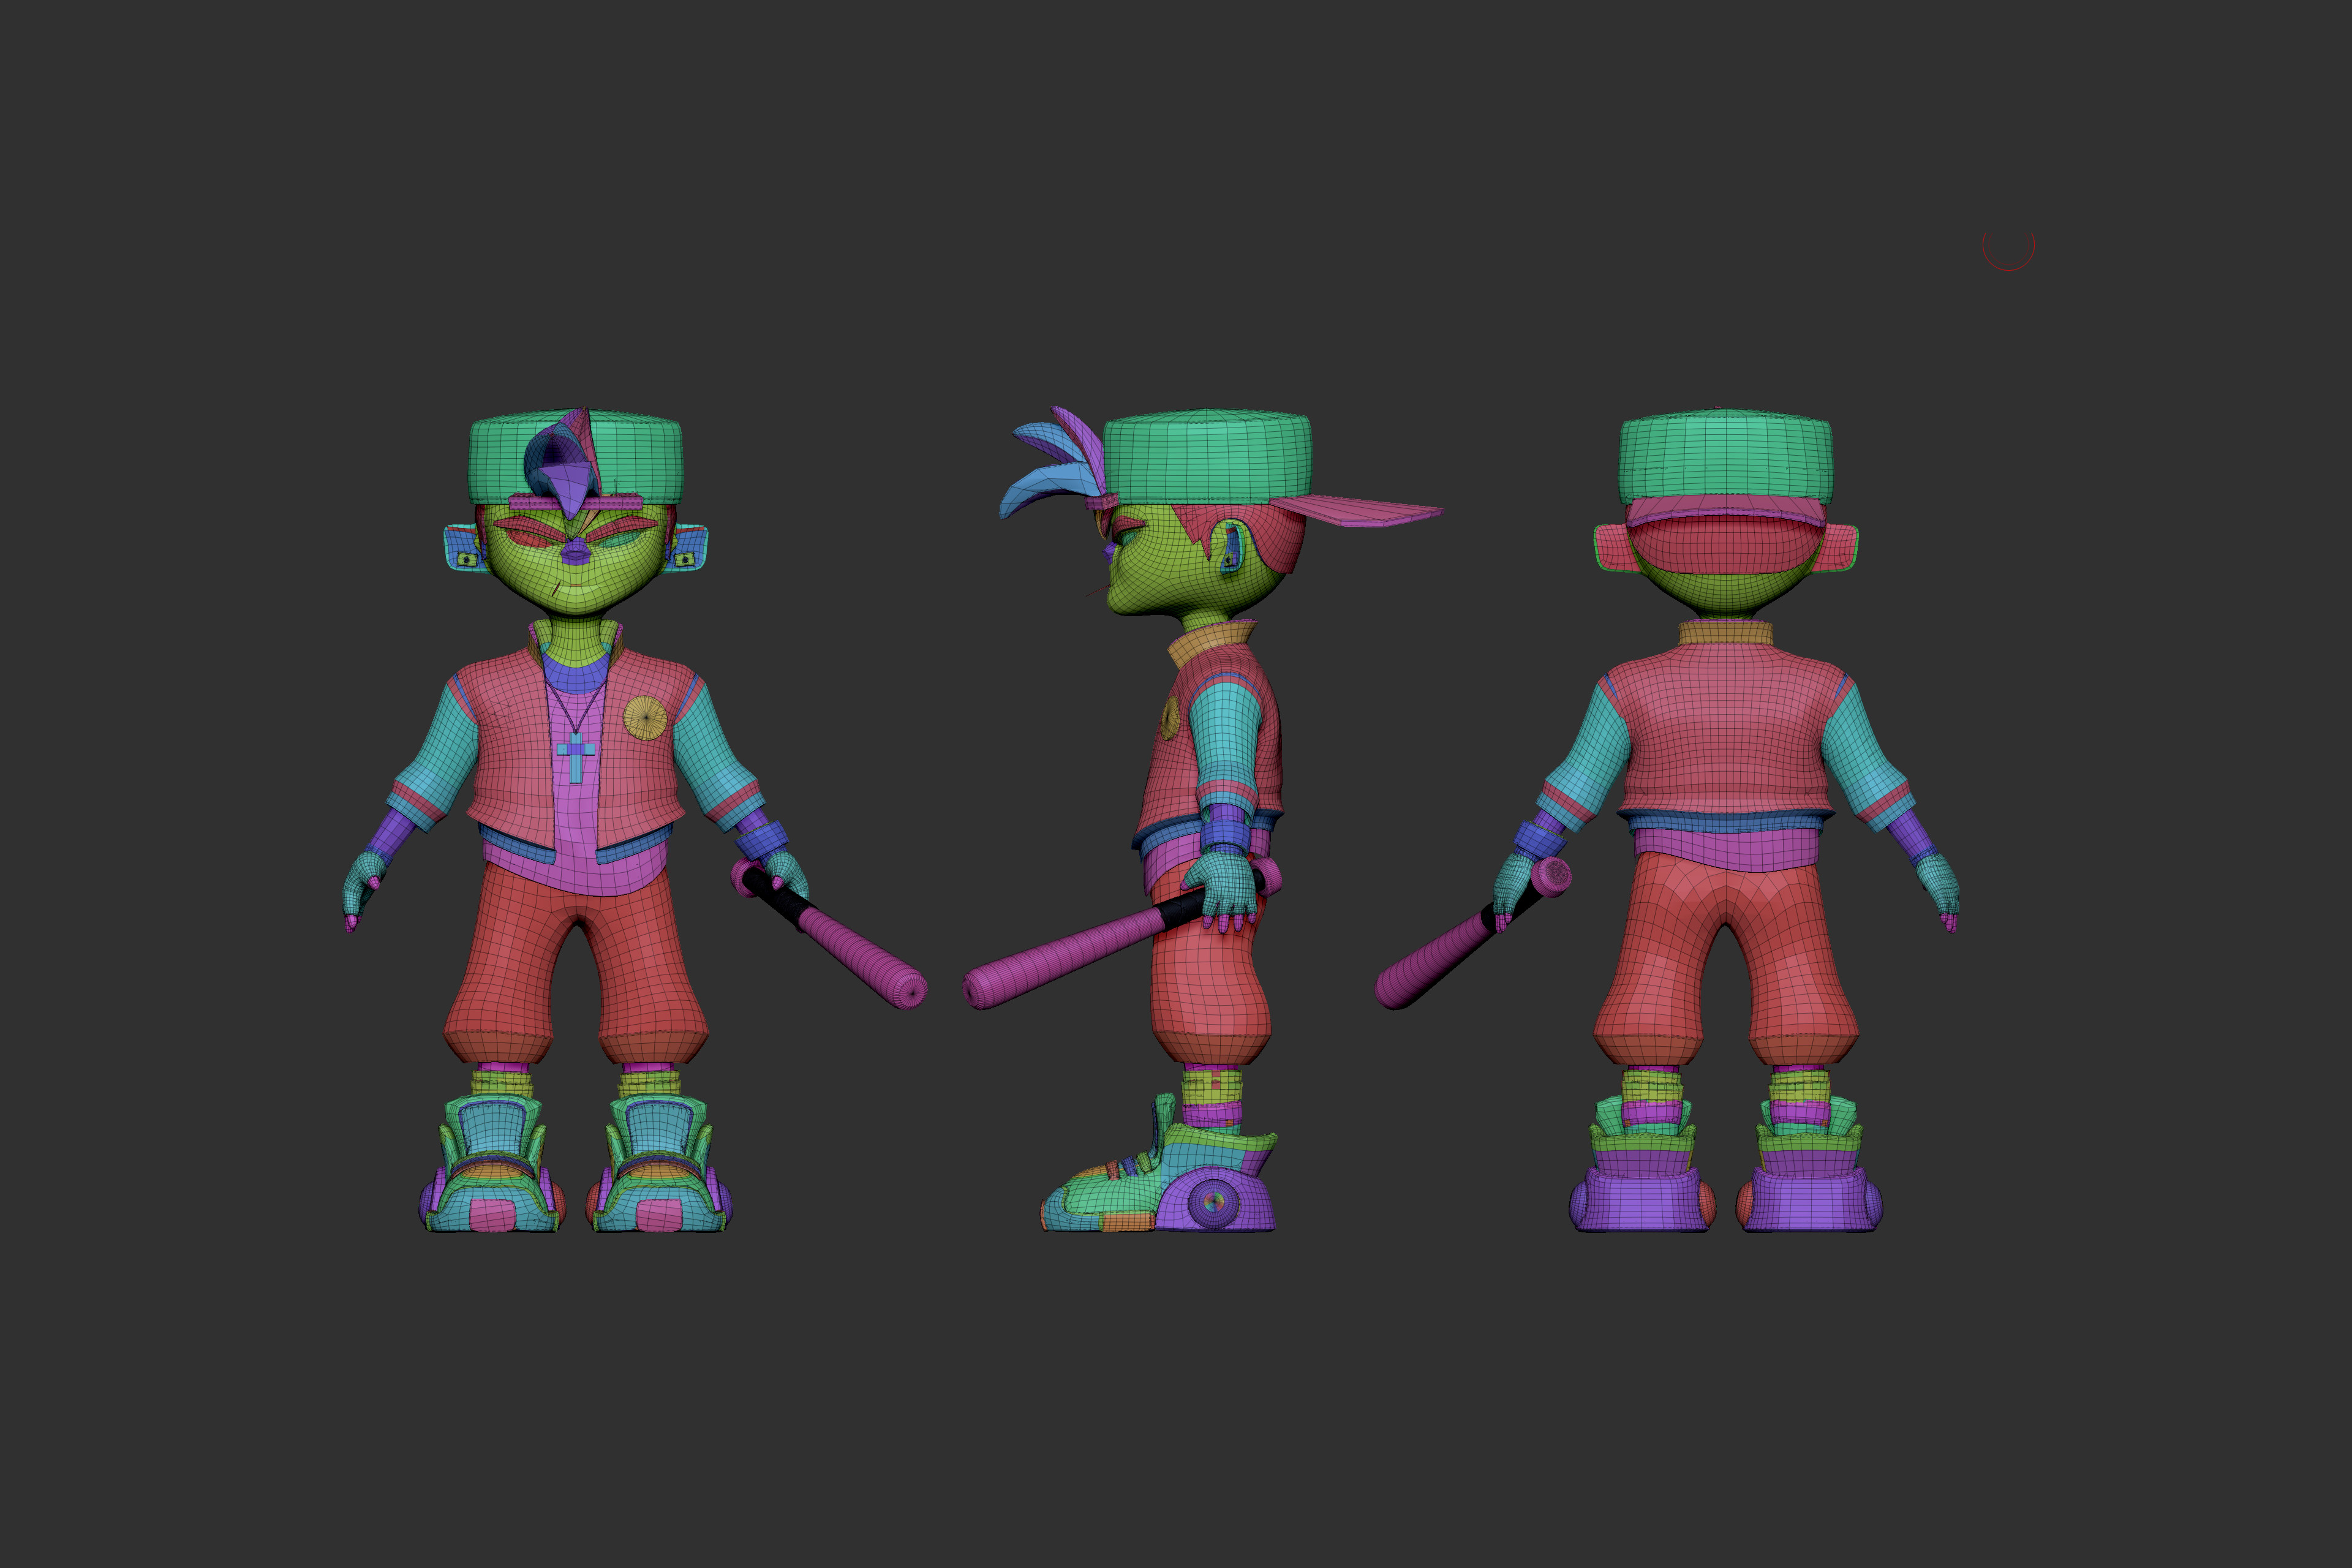 Simple Optimized - Zbrush Poly Groups View